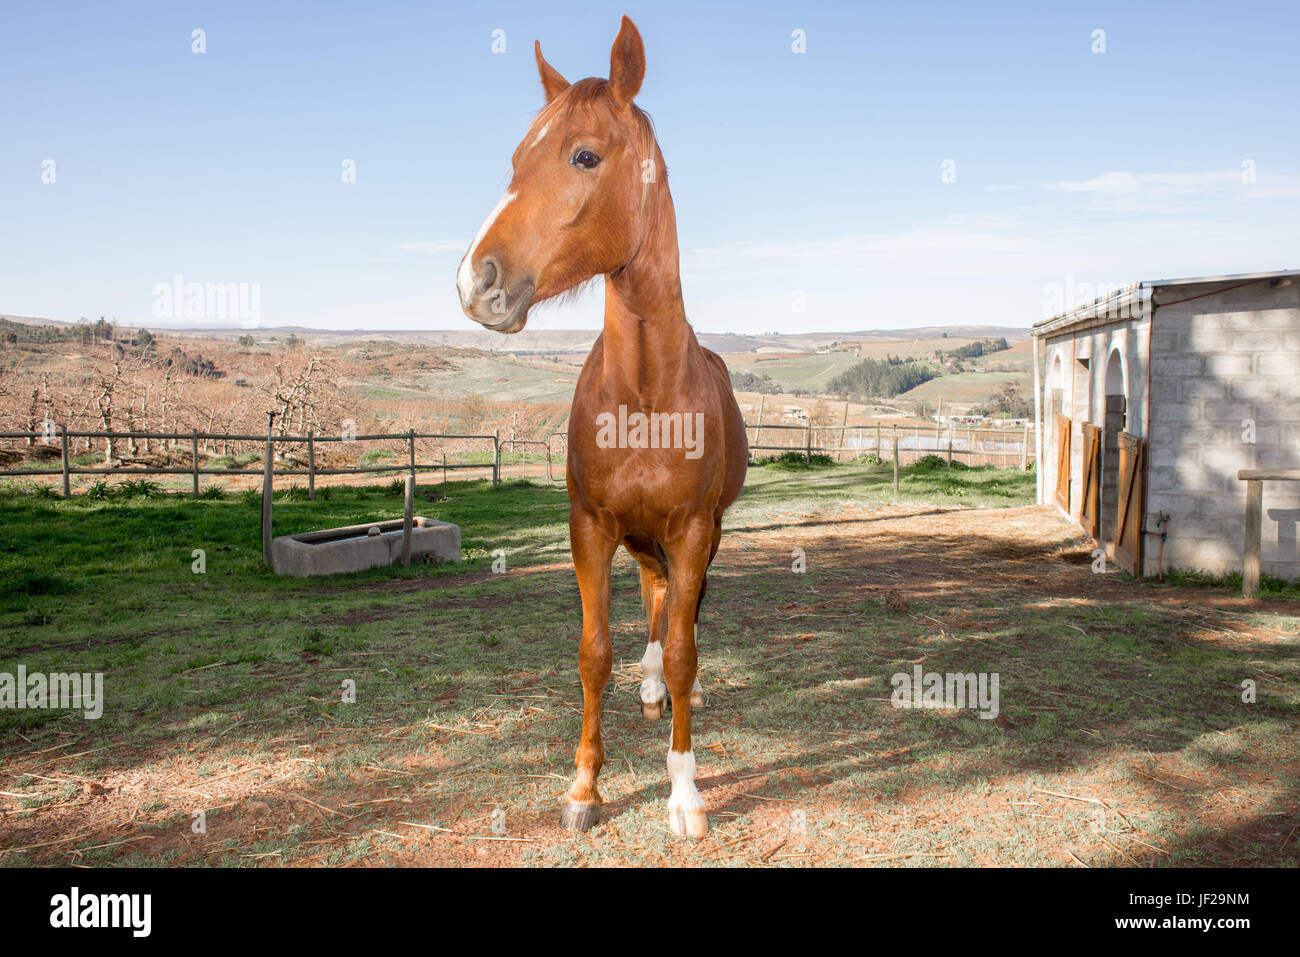 Arabian Horse by Stables - Stock Image